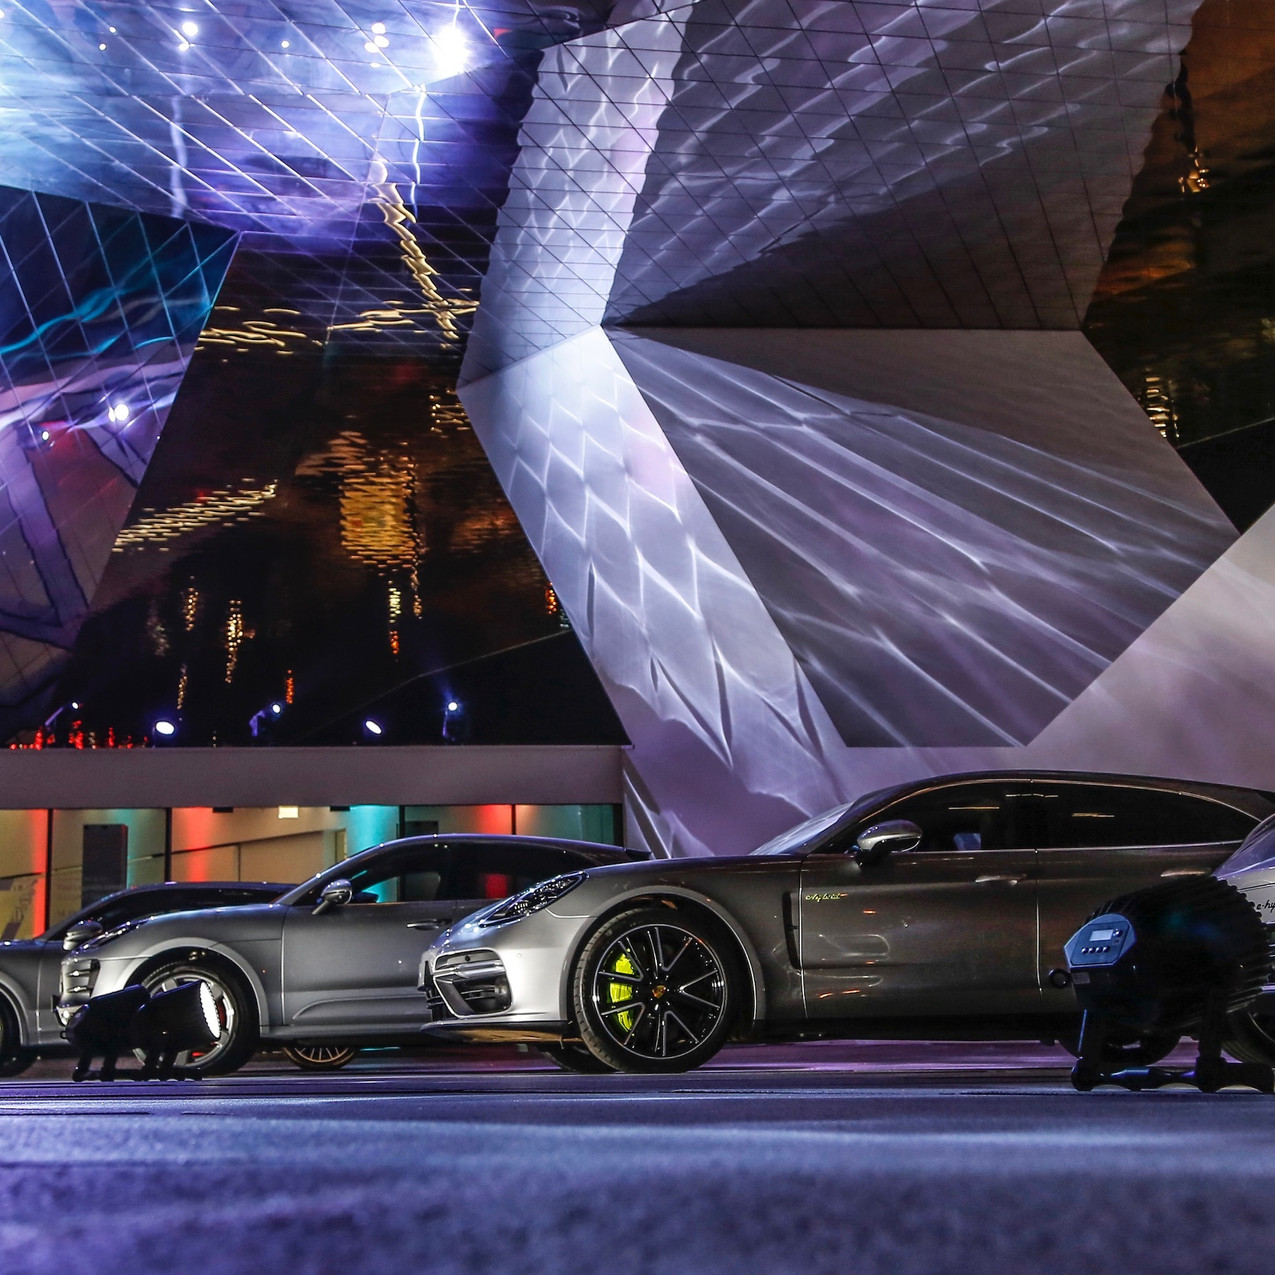 high_cayenne_turbo_macan_turbo_panamera_4_e_hybrid_new_year_reception_porsche_museum_2018_porsche_ag